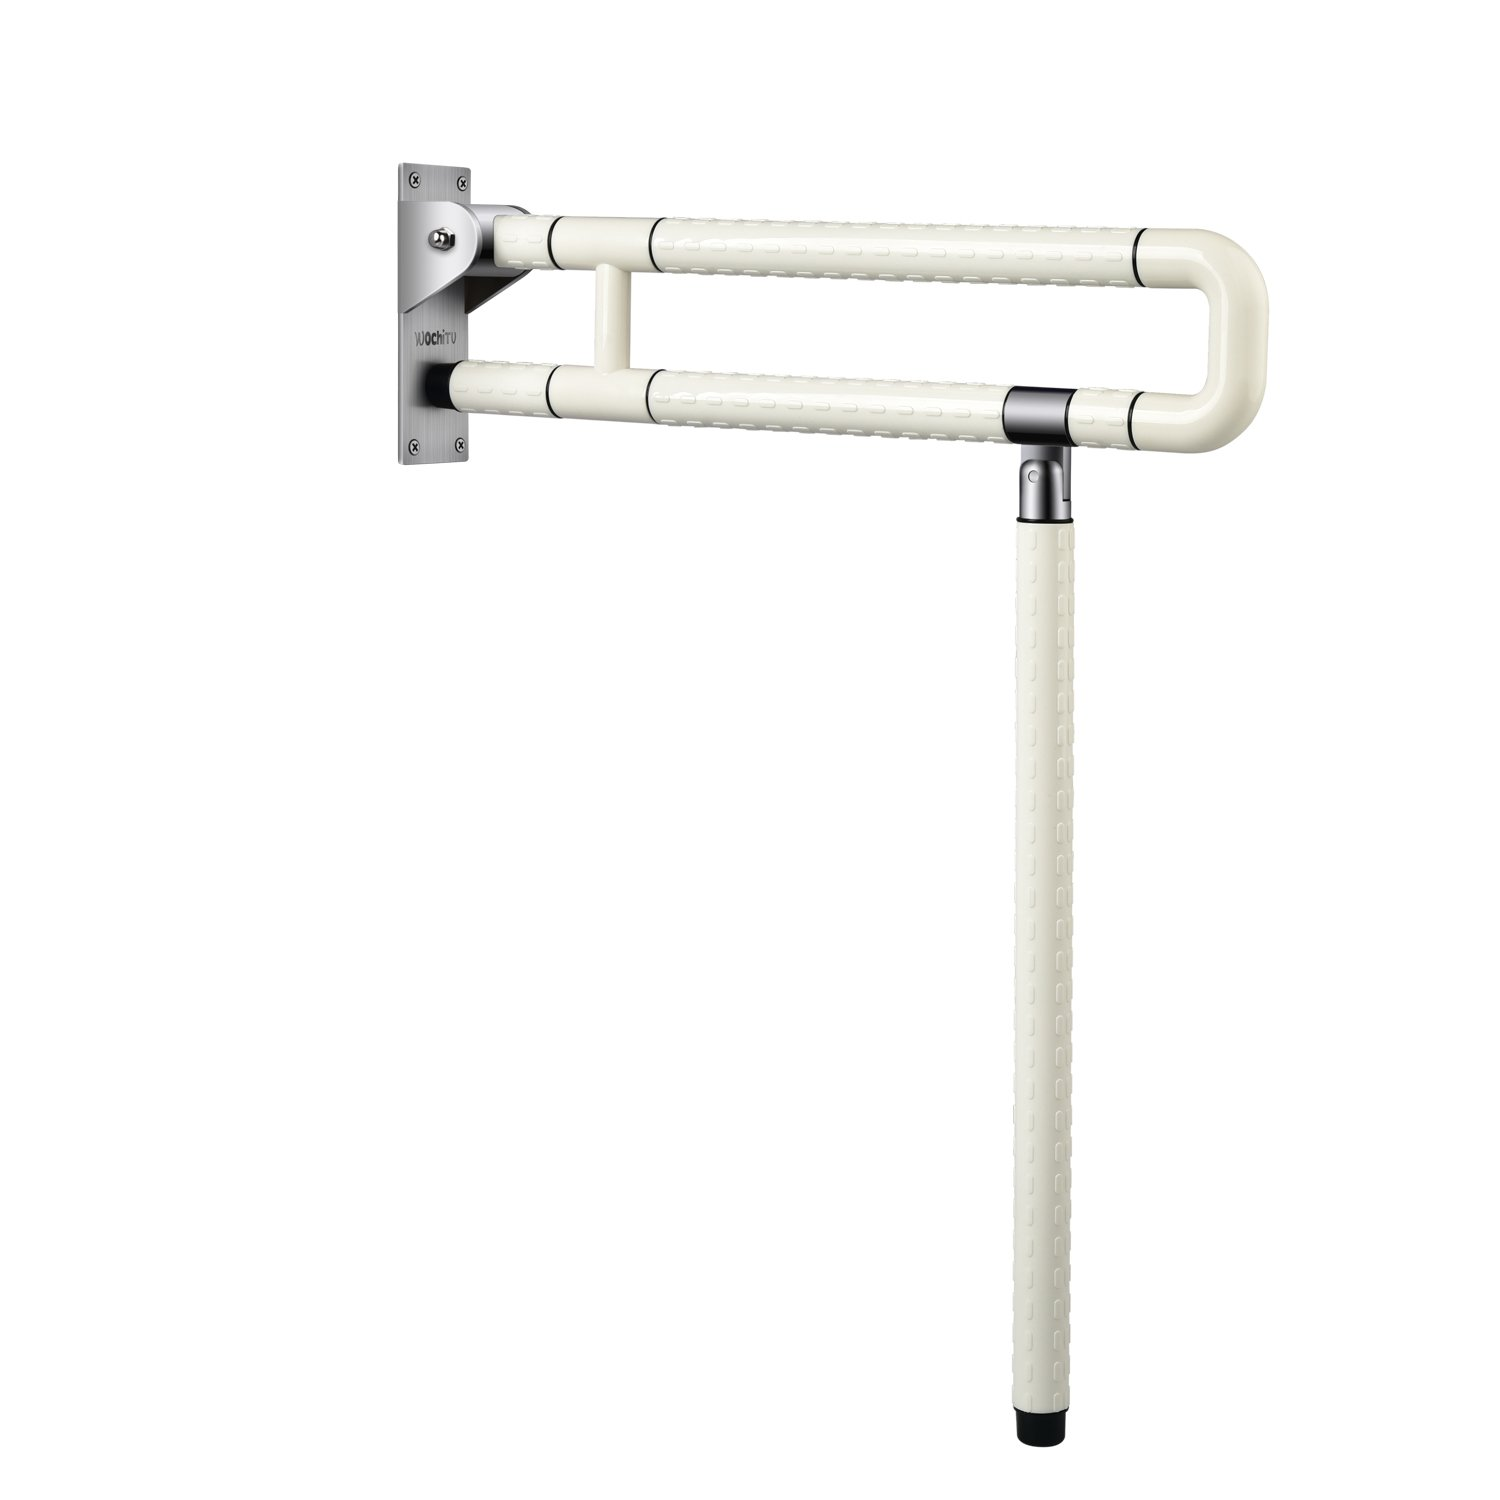 Medical Safety Toilet Grab Bar Handicap Bathroom Seat Support Foldable Skid Resistance Toilet Bathroom Bar Bathroom Hand Grips for Disability Aid and Elderly Assistance (White 75CM)